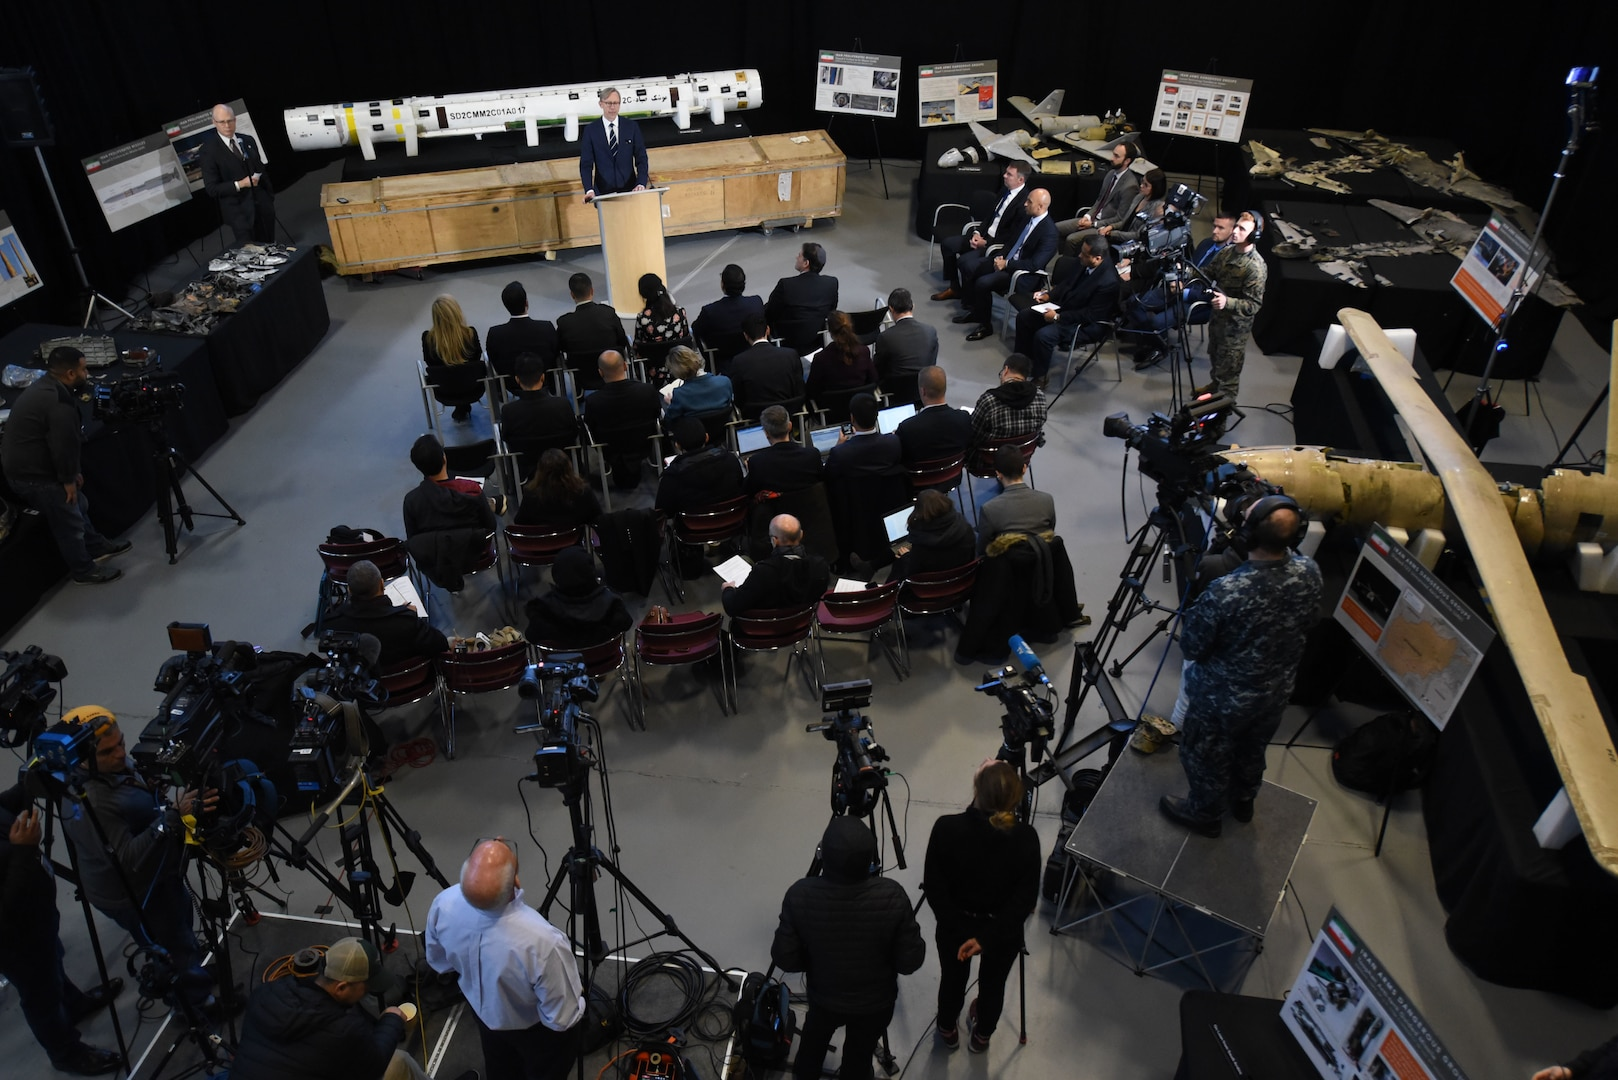 An overview of a press conference.